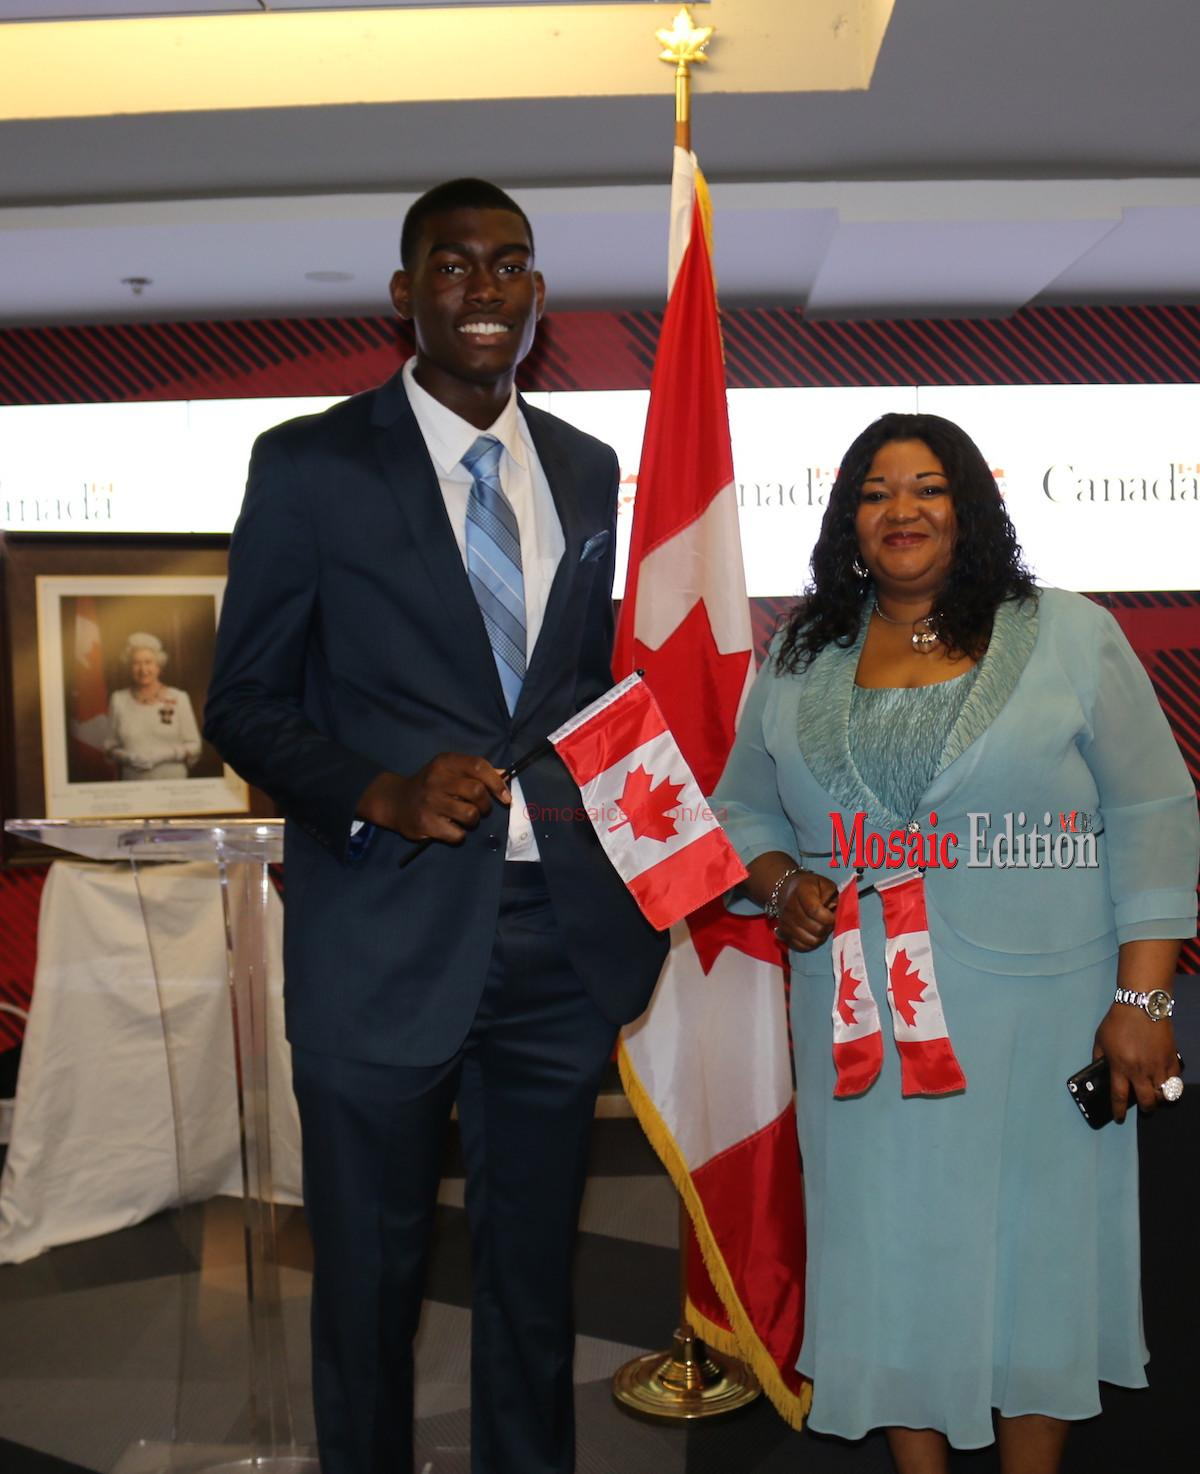 Endurance-Osaghae-and-Hope-Osaghae-after-swearing-oath-of-citizenship-at-BMO-Field.